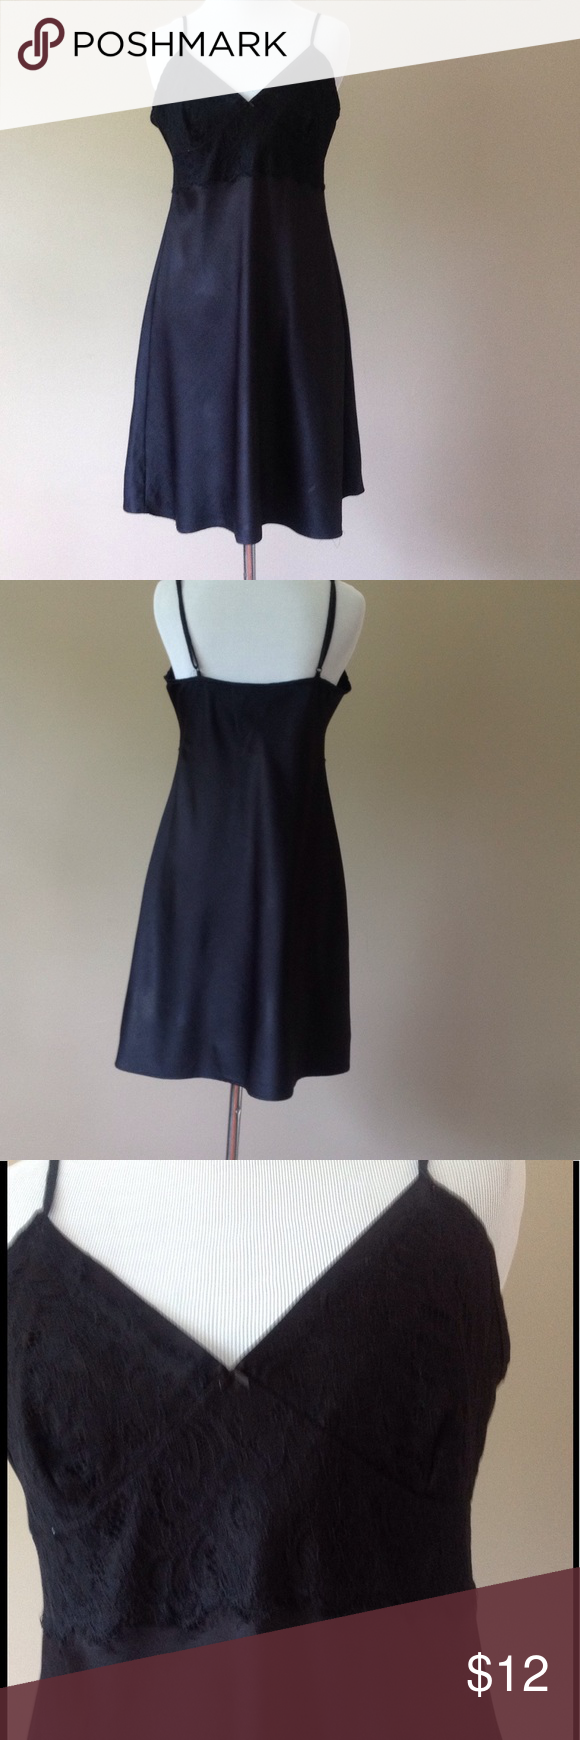 Satin and lace slip dress lingerie Size medium with adjustable straps by. Gilligan and O Malley Sleepwear Gilligan & O'Malley Intimates & Sleepwear Chemises & Slips